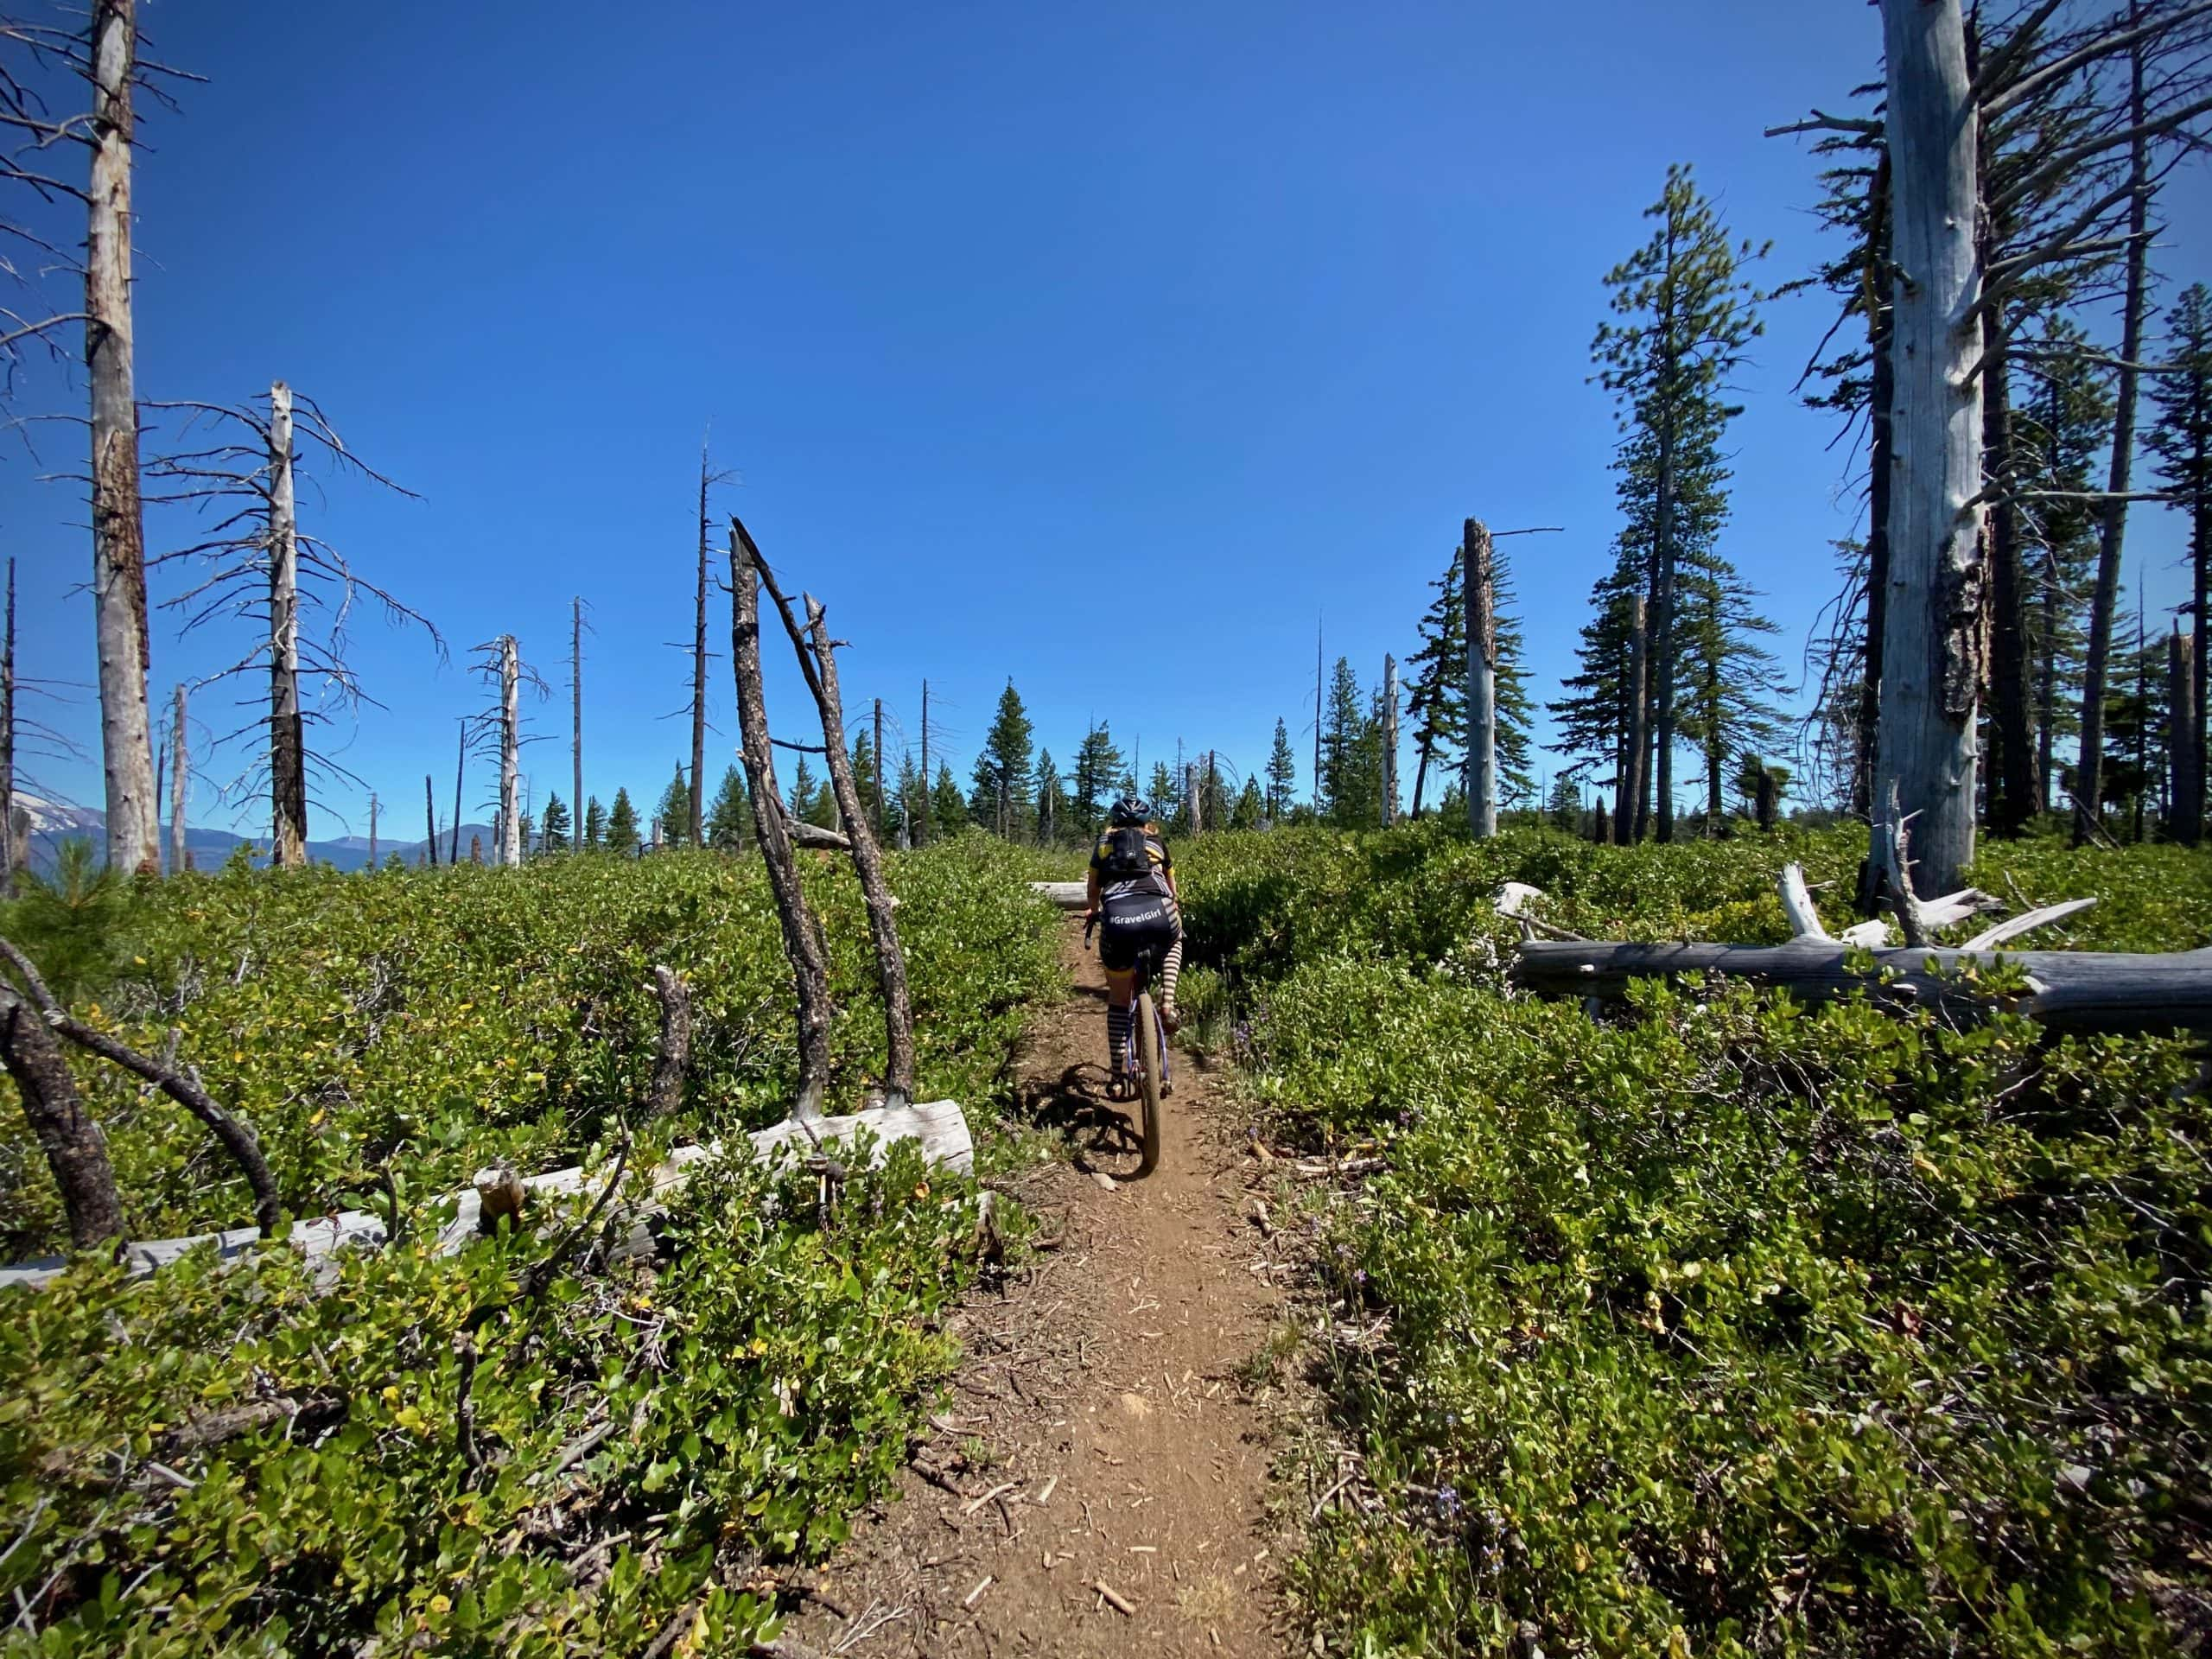 Cyclists on the Green Ridge trail in the section that burned in the Wizard fire of 2008 in Oregon.